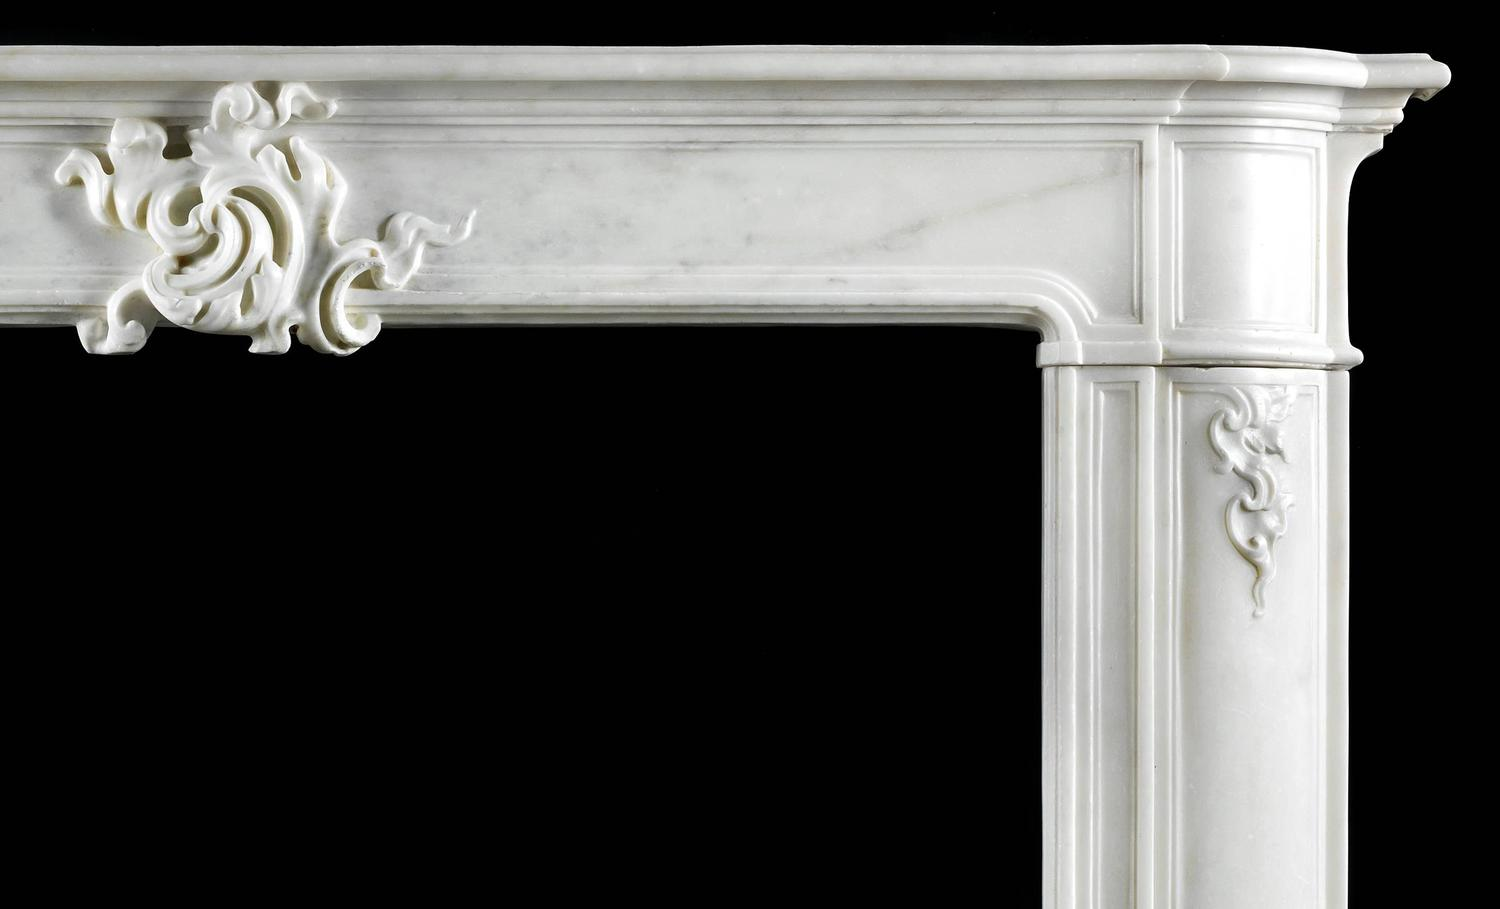 18th century antique fireplace mantel in white statuary